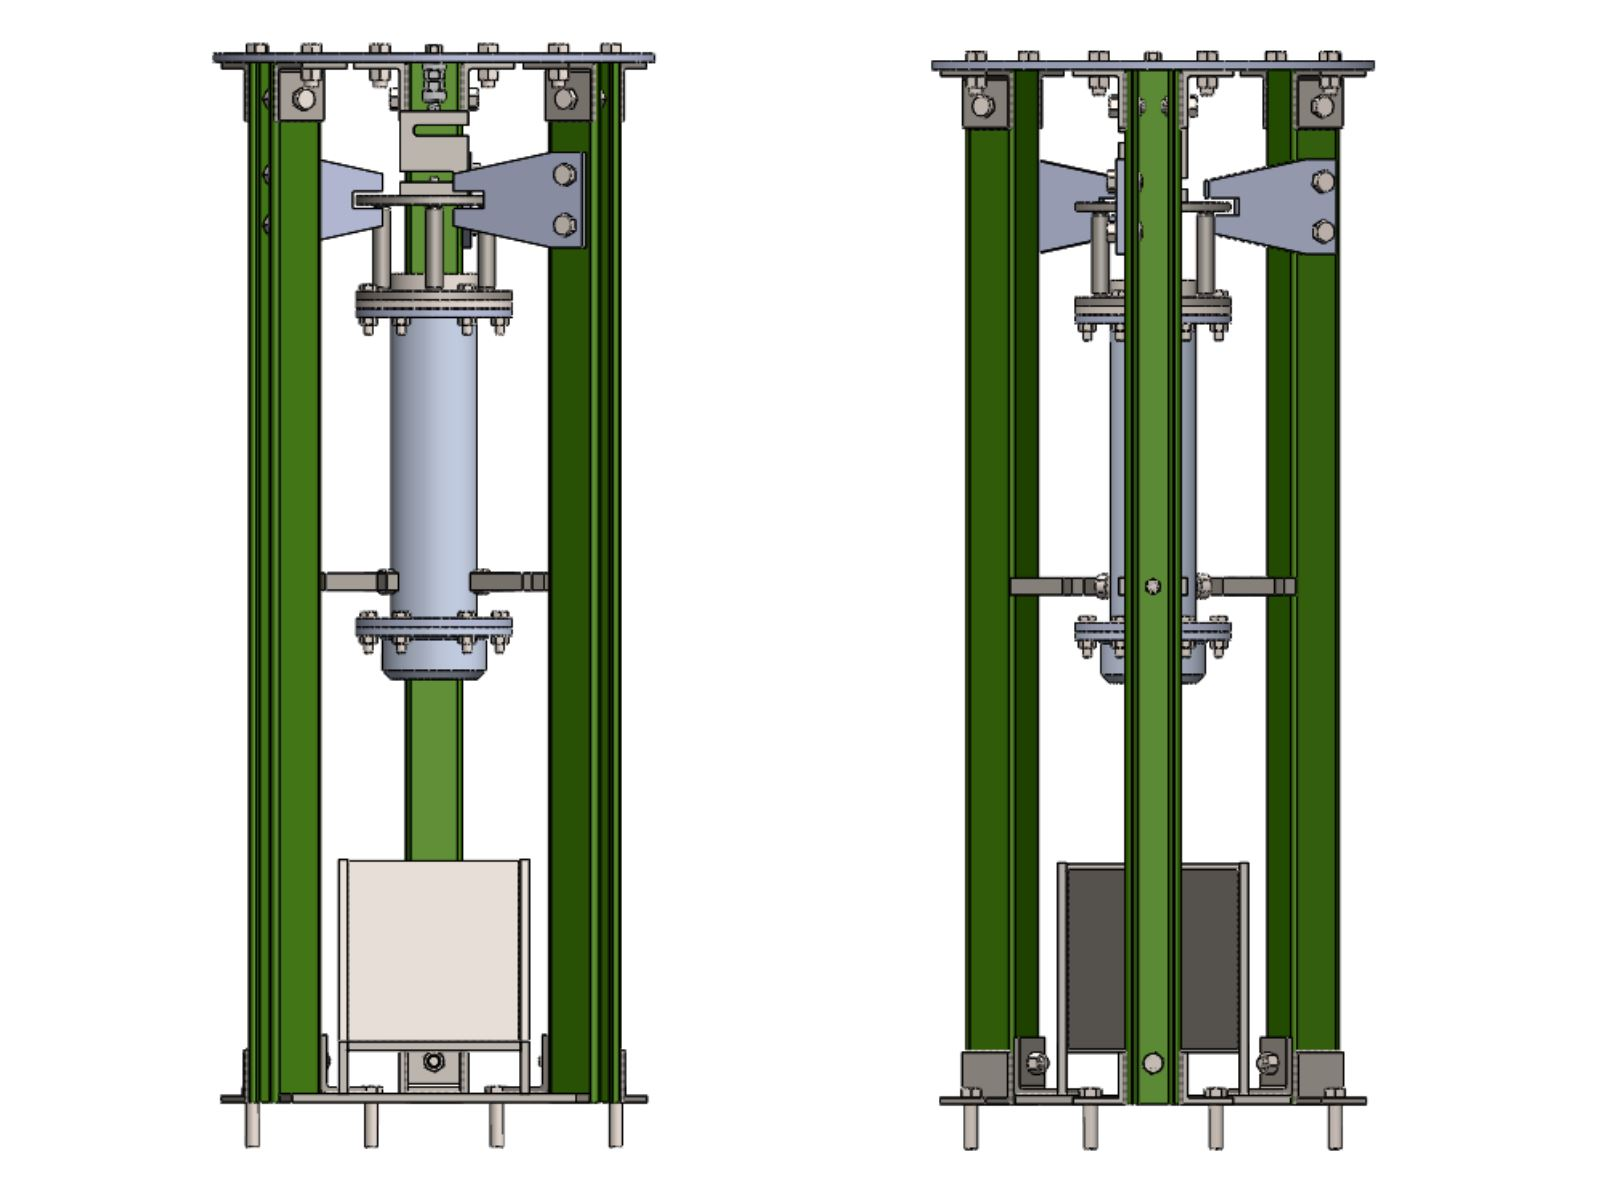 The front (left) and back (right) of the Luna test stand